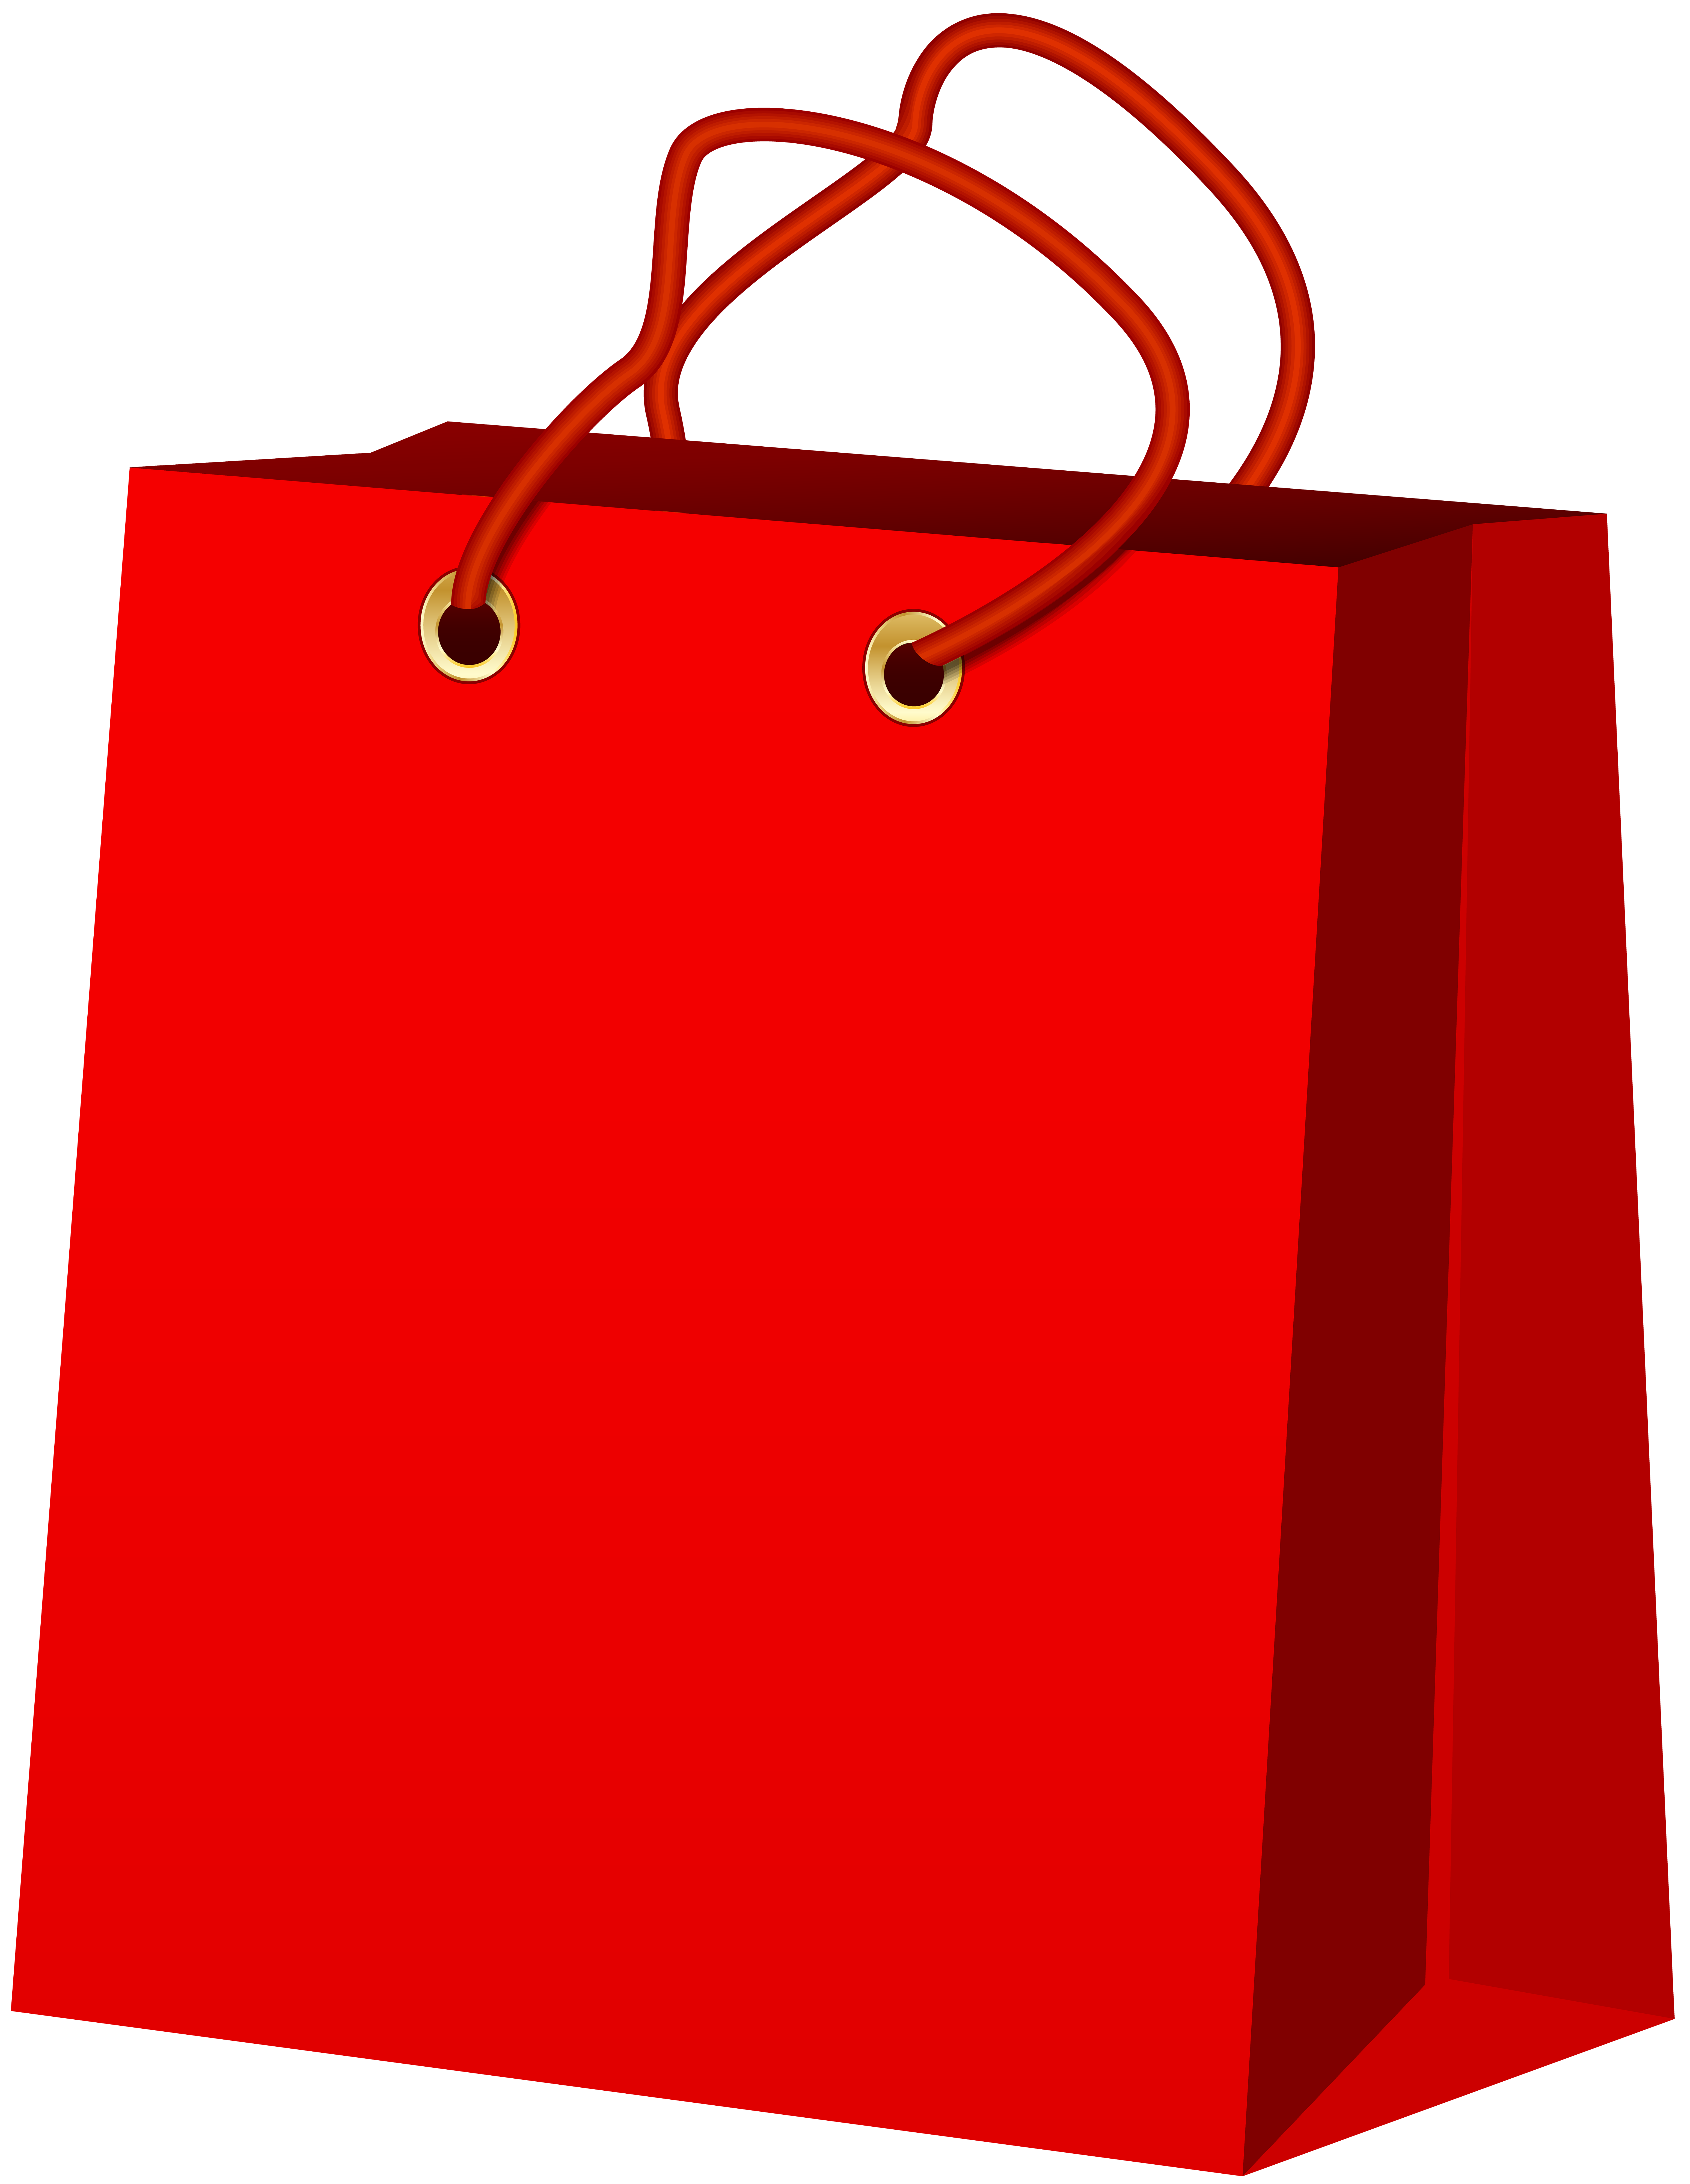 clipart royalty free stock Bags clipart. Red gift bag png